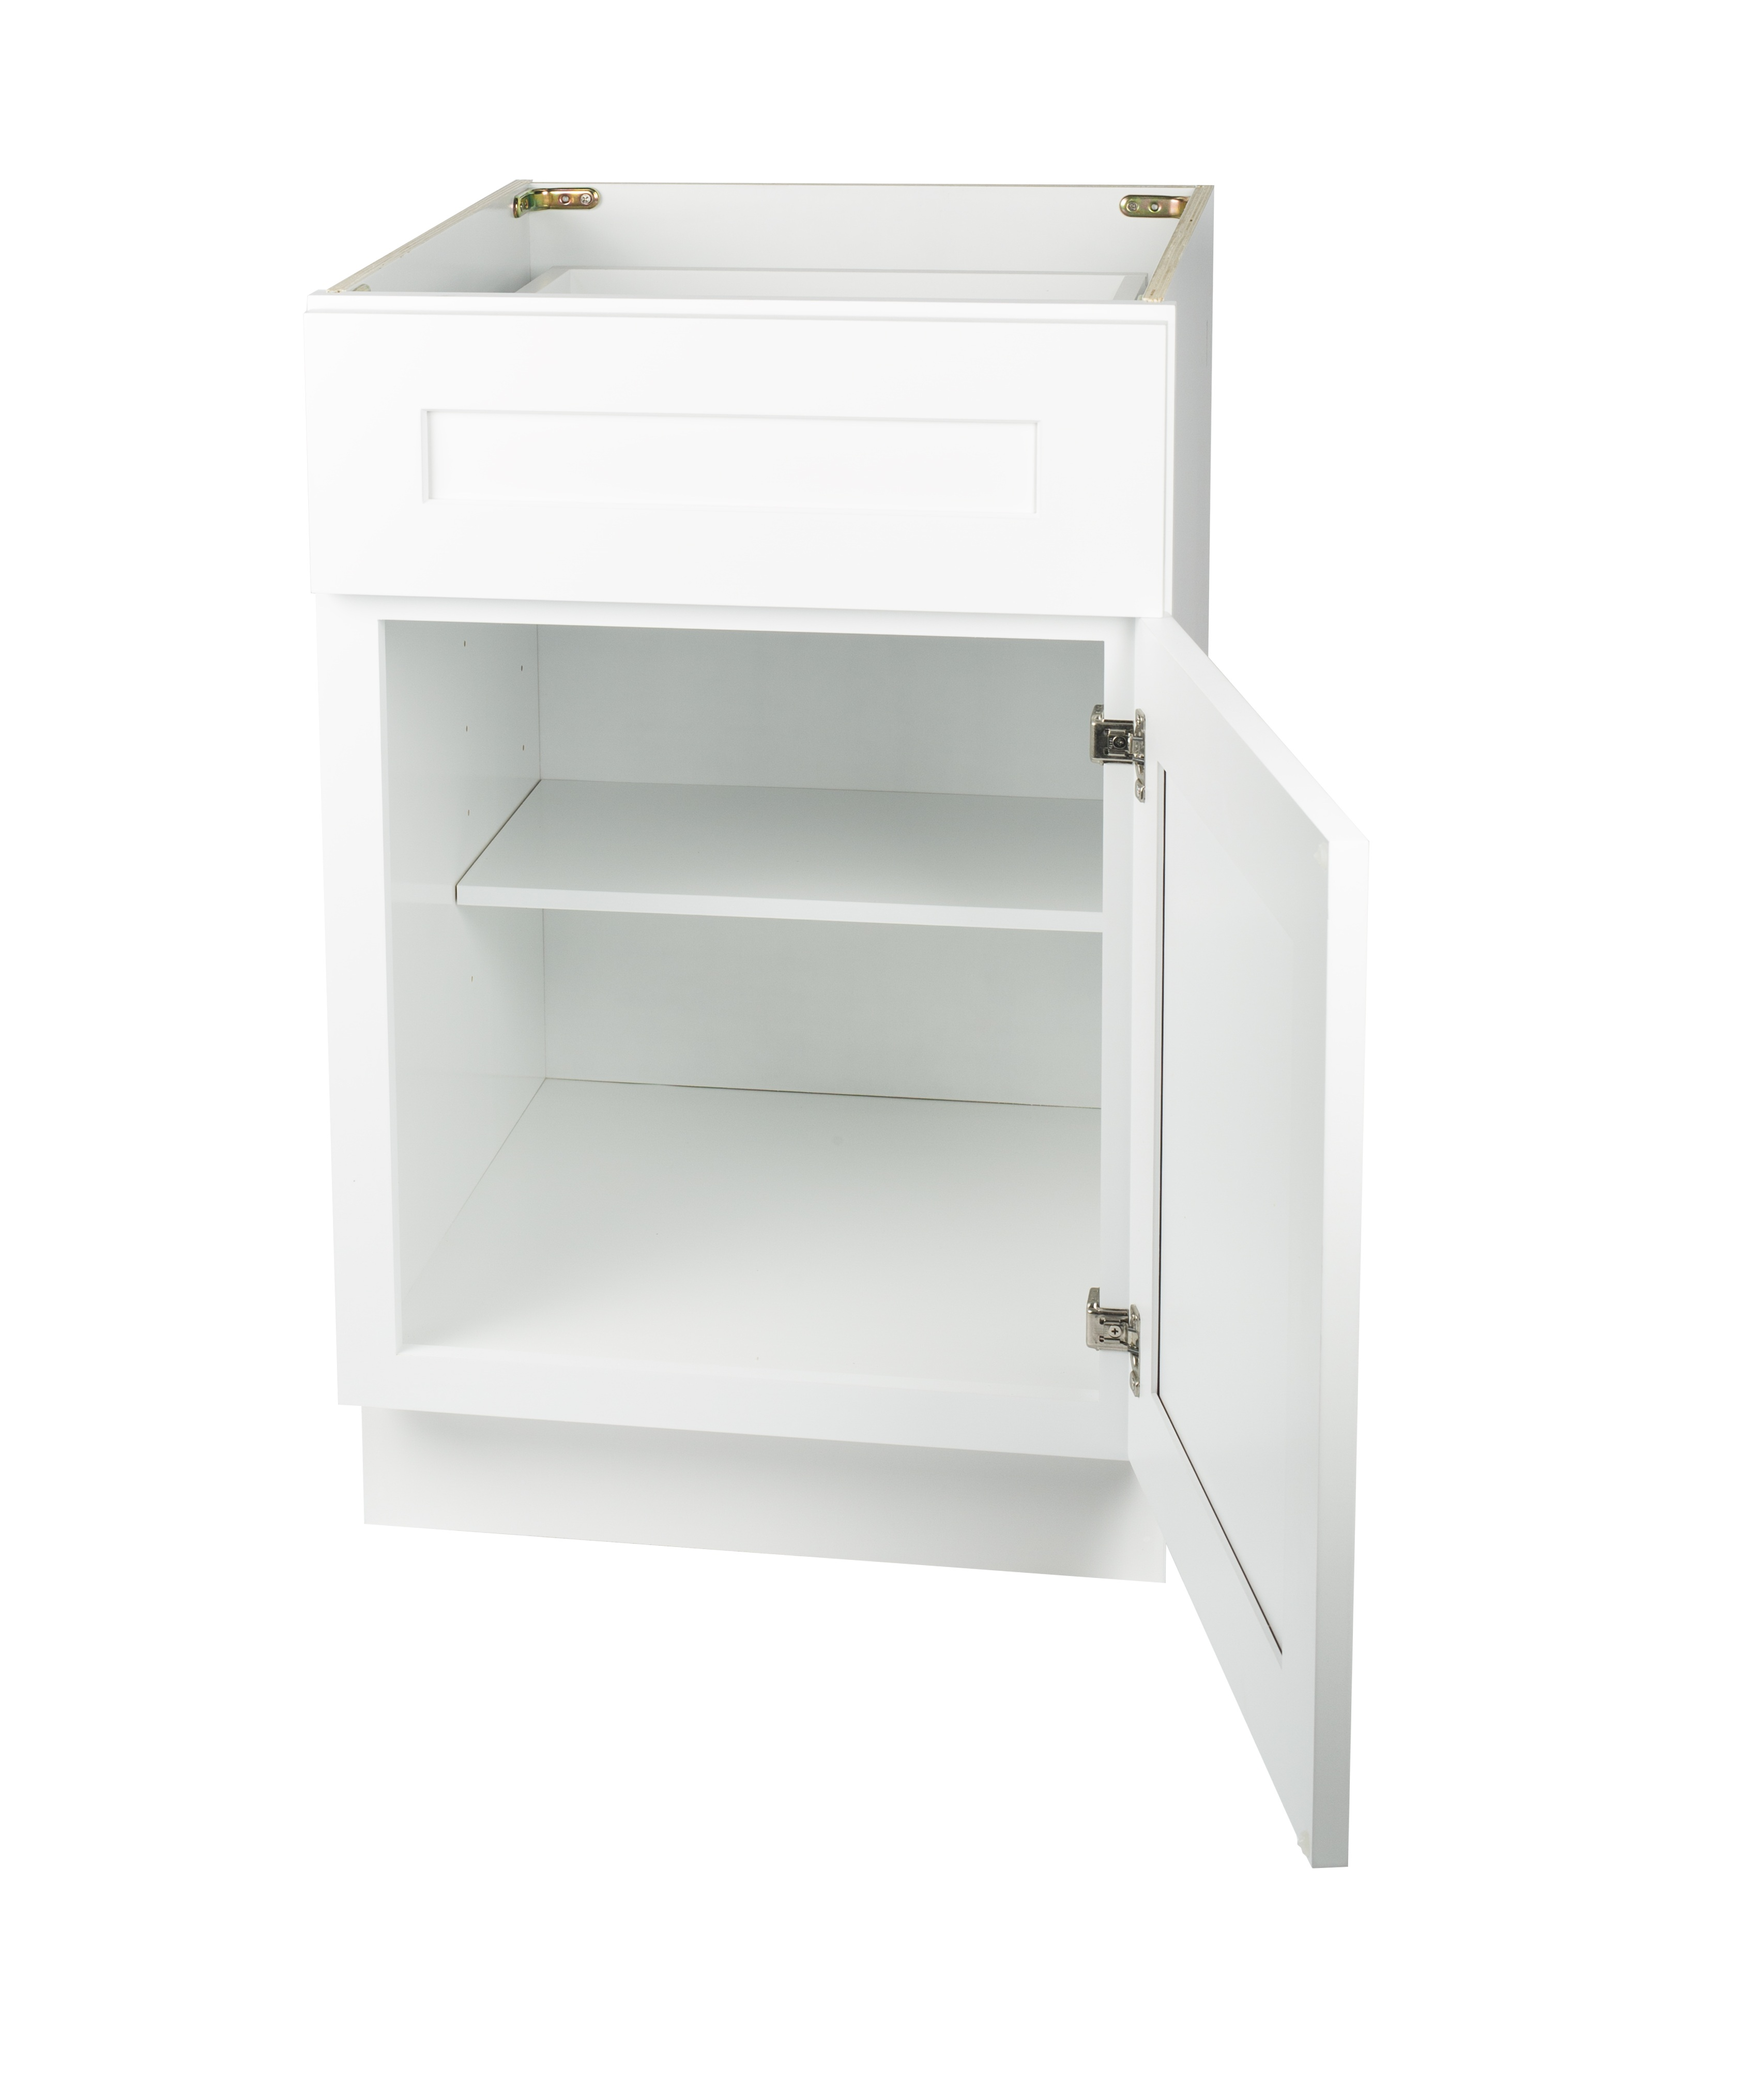 Ready to Assemble 21Wx34.5Hx24D in. Shaker Base Cabinet with 2 Door and 1 Drawer in White